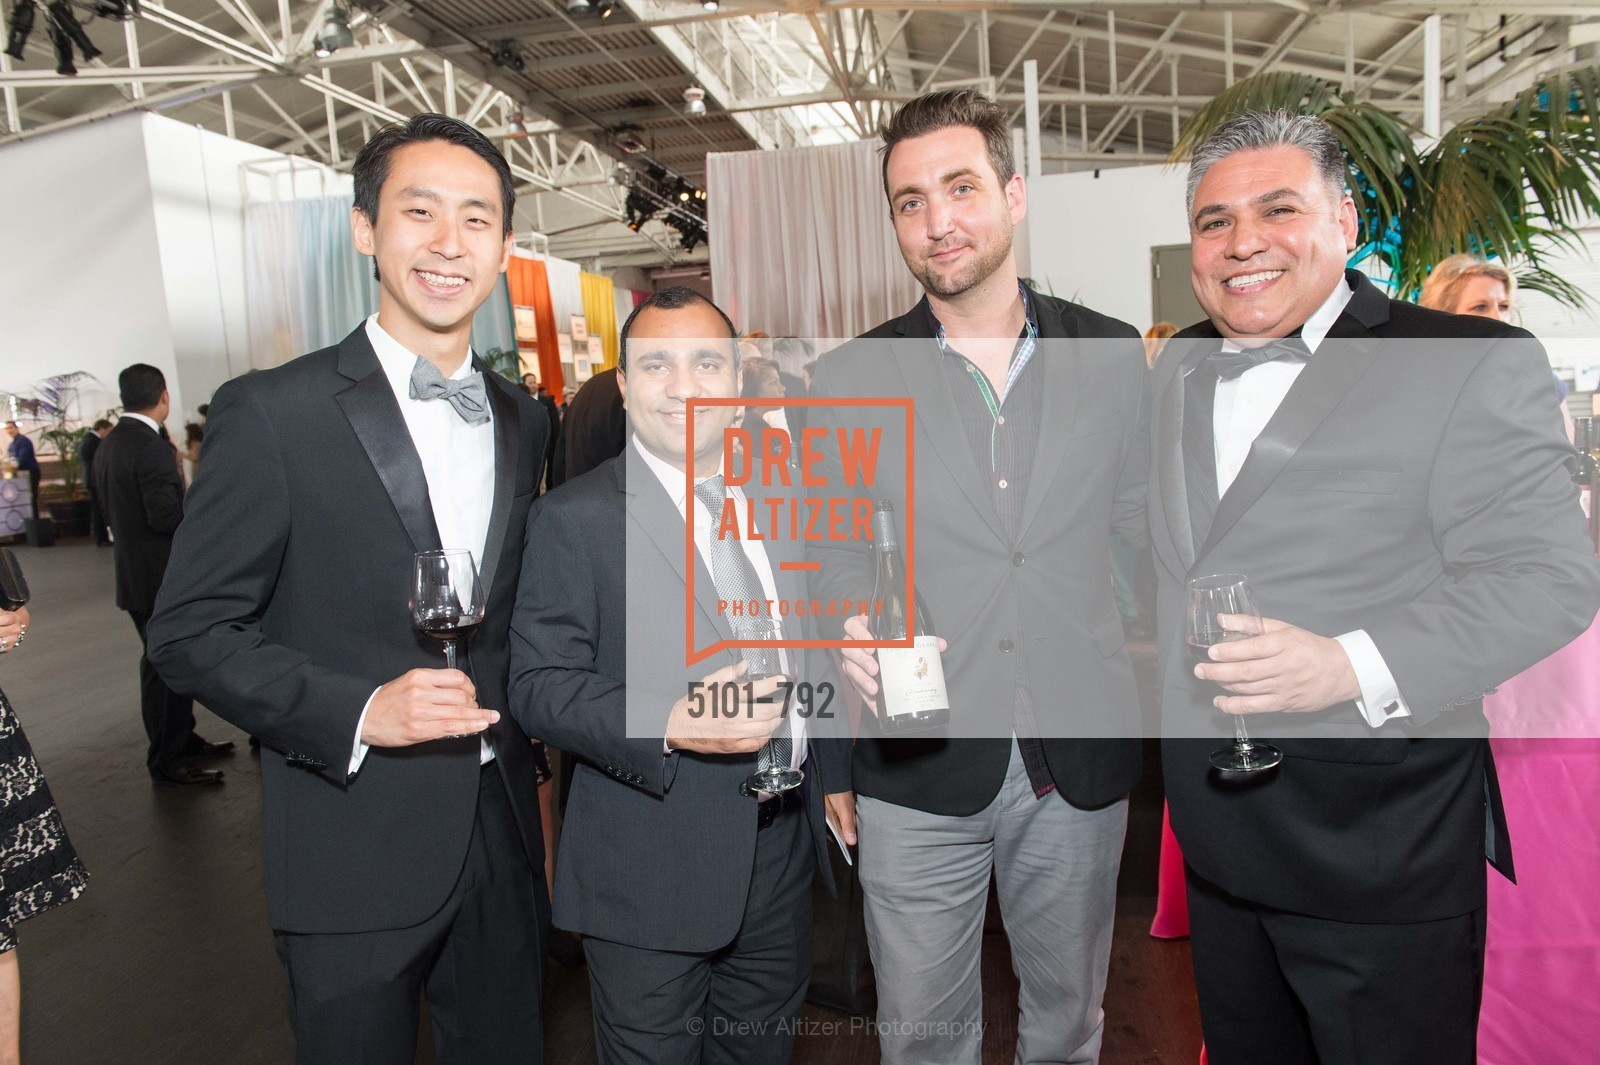 Jeff Lu, Nakul Mandan, Sean Tevik, John China, MEALS ON WHEELS OF SAN FRANCISCO'S 28th Annual Star Chefs and Vintners Gala, US, April 20th, 2015,Drew Altizer, Drew Altizer Photography, full-service event agency, private events, San Francisco photographer, photographer California